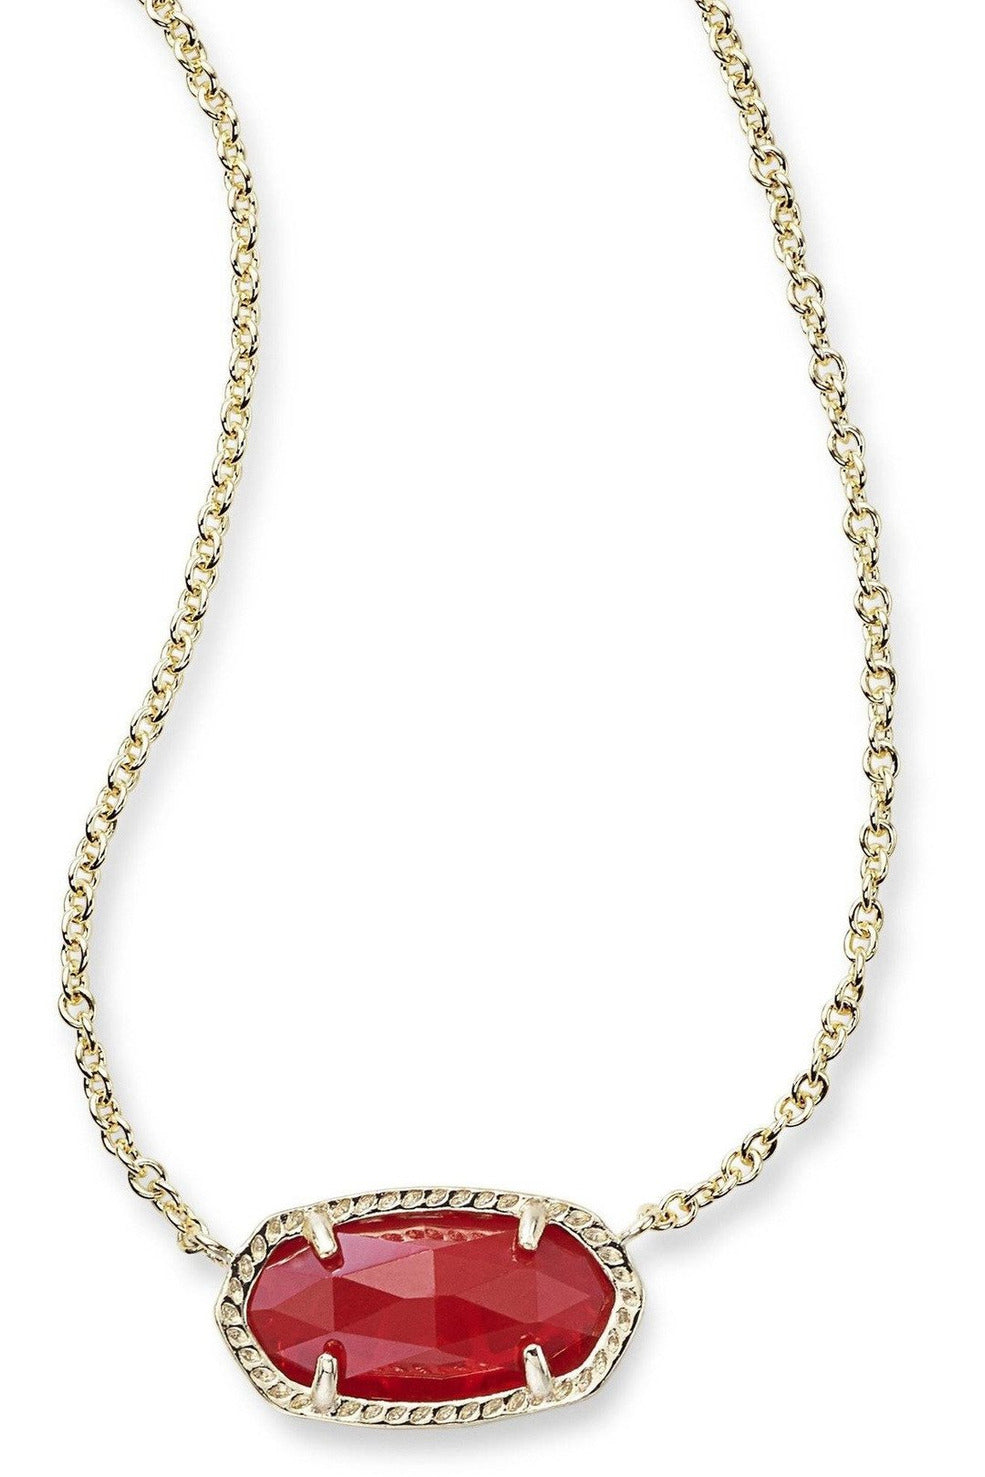 shop shape red product taking today ruby online necklace